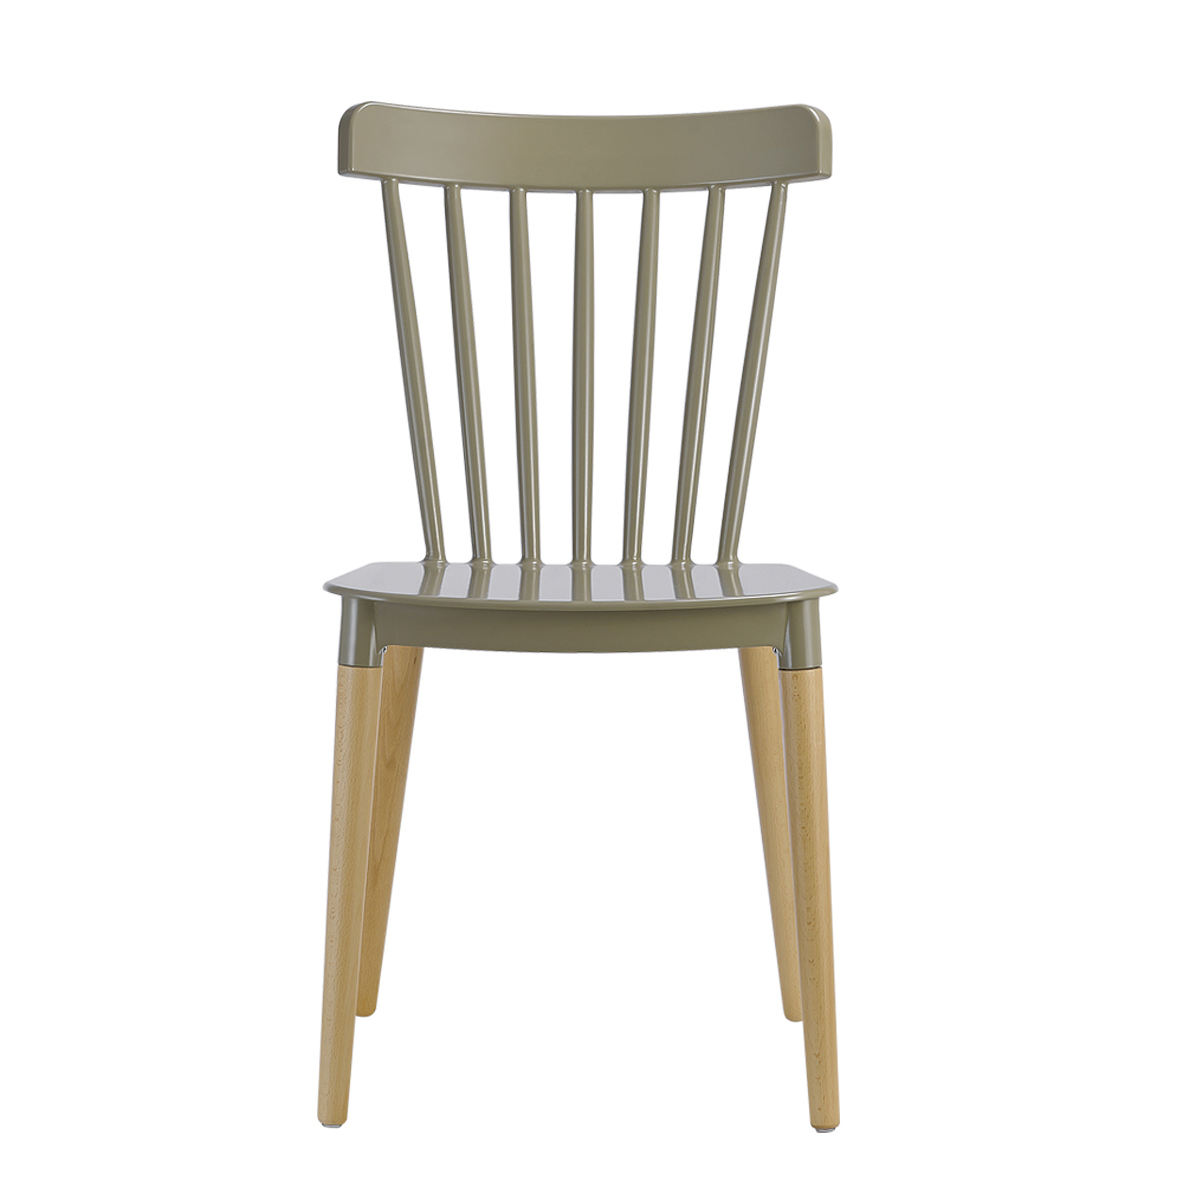 High Quality Comfortable Plastic Chairs For Sale / Modern PP Restaurant Dining Chair With Solid Beech Wood Legs